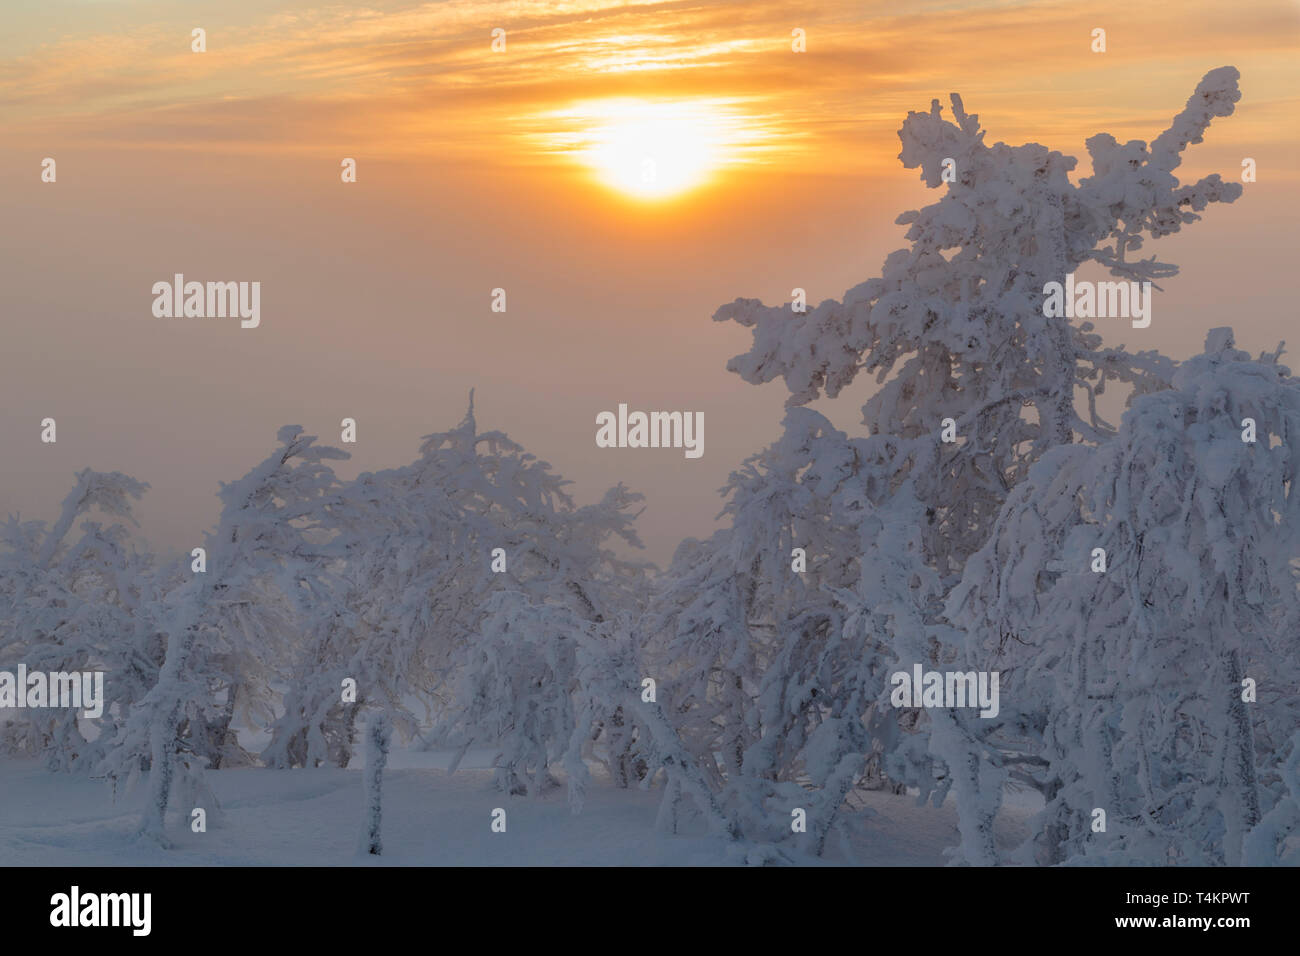 Landscape in winter season, sun behind clouds making the sky orange, nice colorful sky, Gällivare county, Swedish Lapland, Sweden - Stock Image